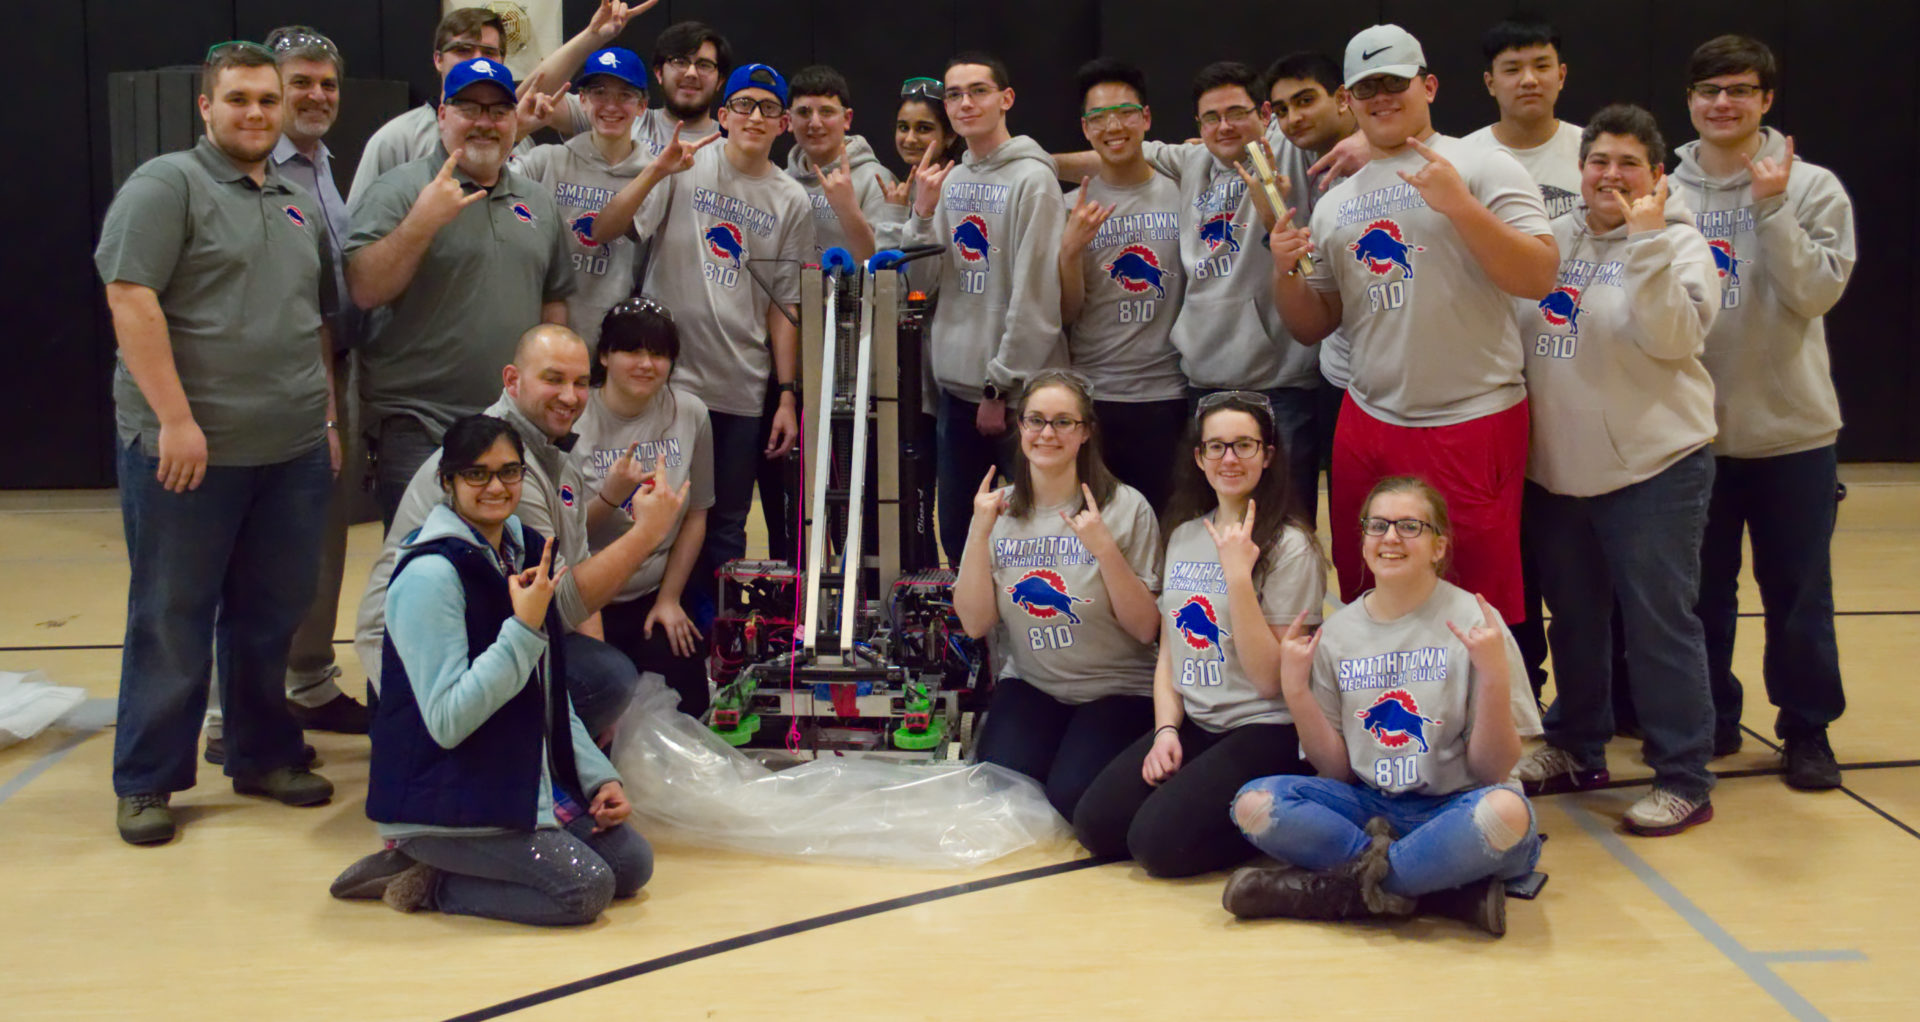 Smithtown Robotics Competitive High School Robotics Team